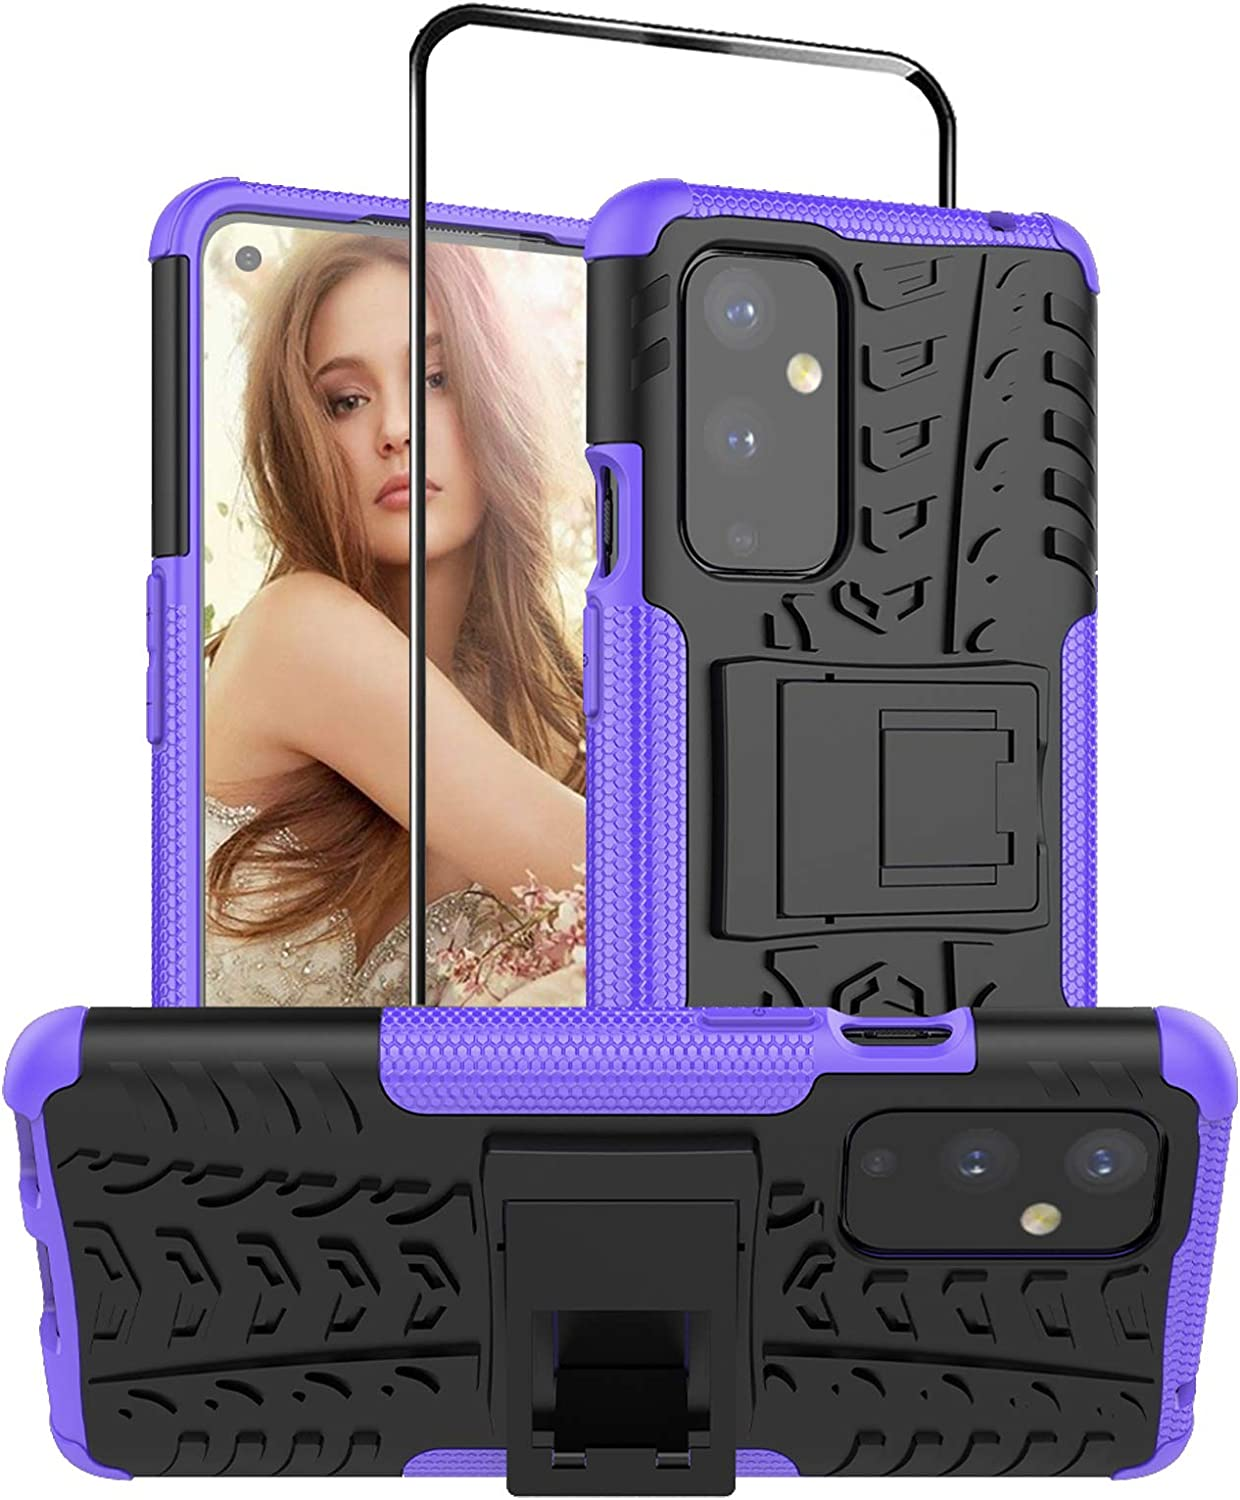 Starhemei for OnePlus 9 Case with Tempered Glass Screen Protector, Double Armor with Kickstand Anti-Fall Shock-Absorbing Phone Case for OnePlus 9 (Purple)